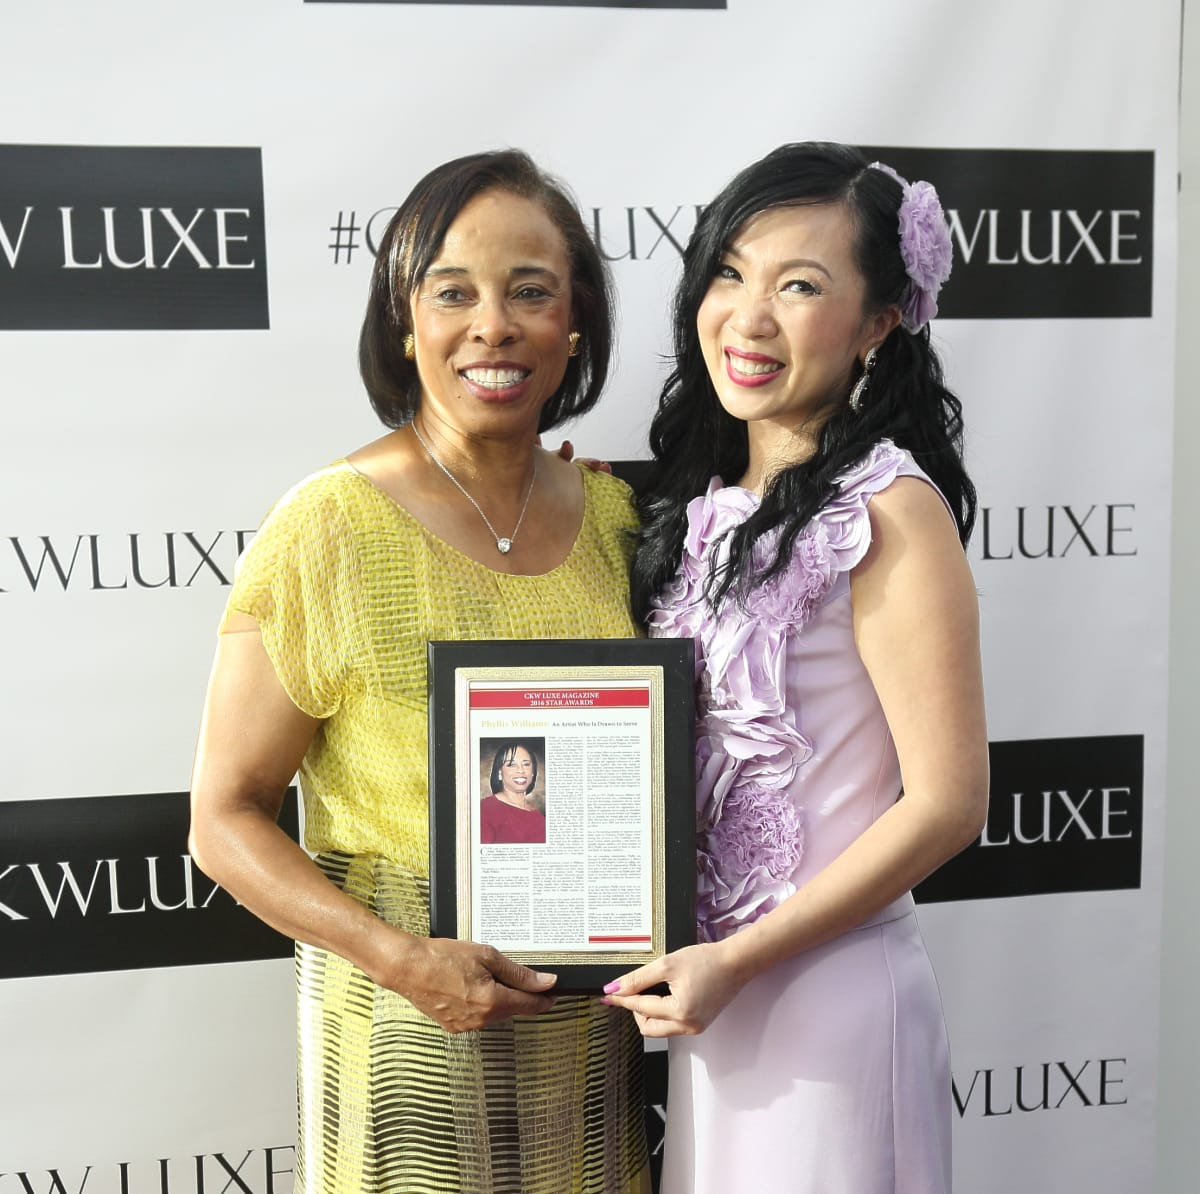 CKW Luxe Star Awards 6/16 Phyllis Williams, Connie Kwan-Wong